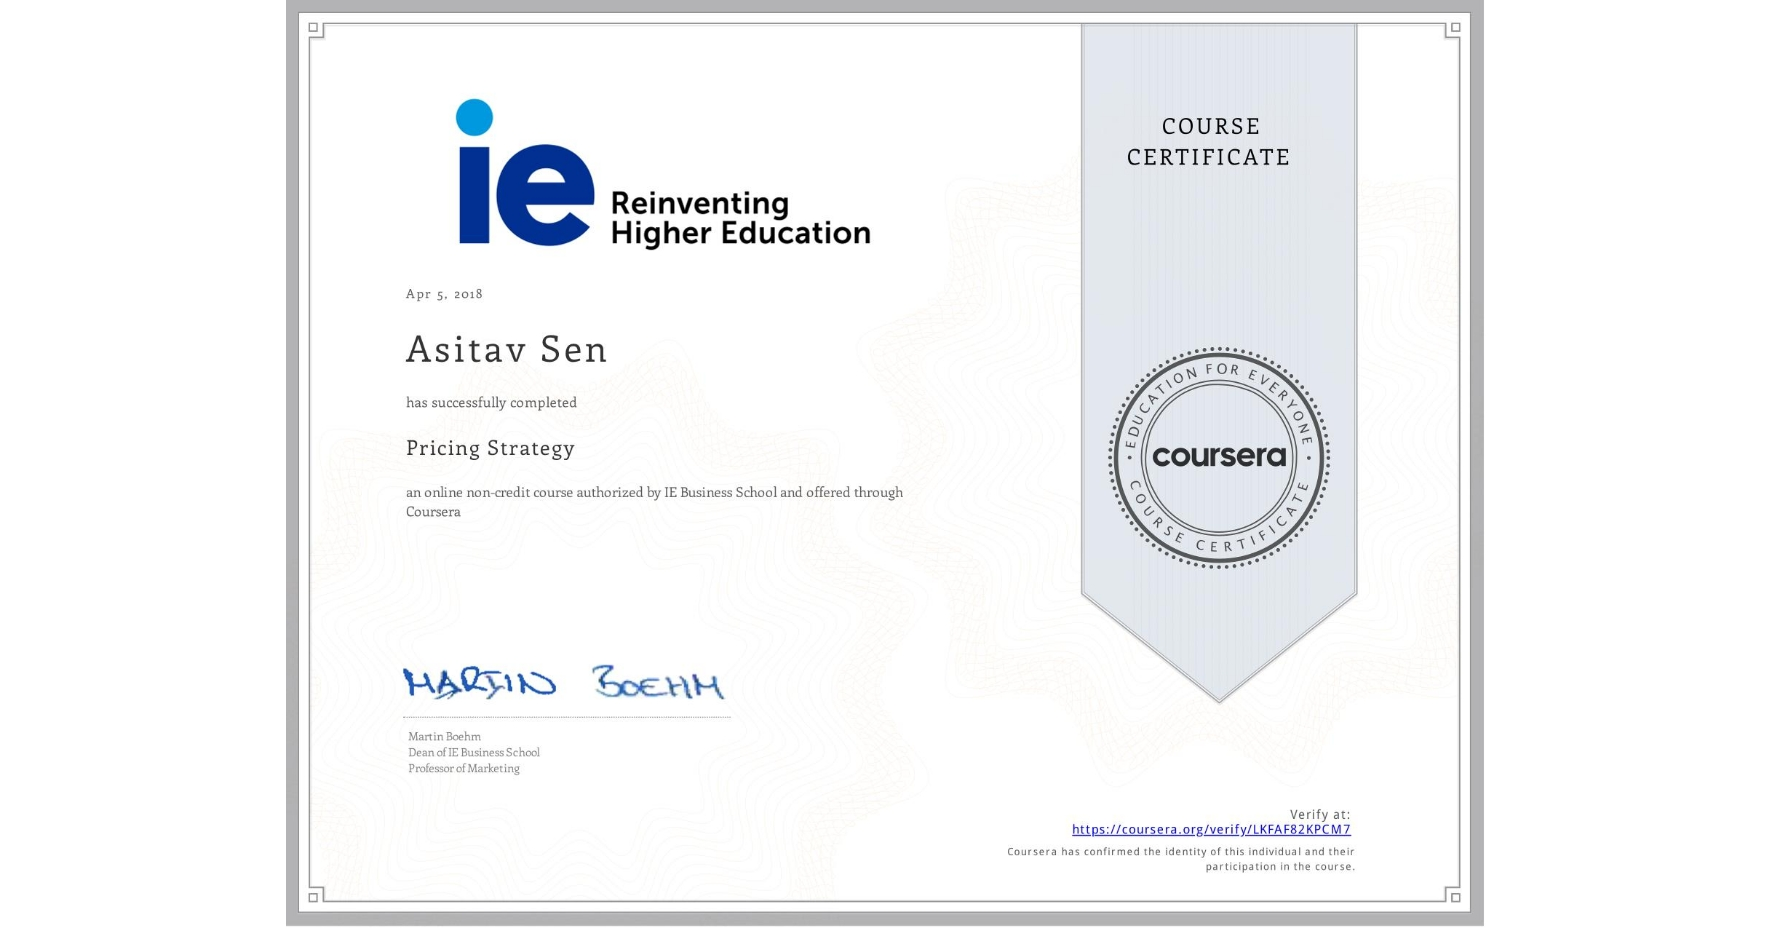 View certificate for Asitav Sen, Pricing Strategy, an online non-credit course authorized by IE Business School and offered through Coursera